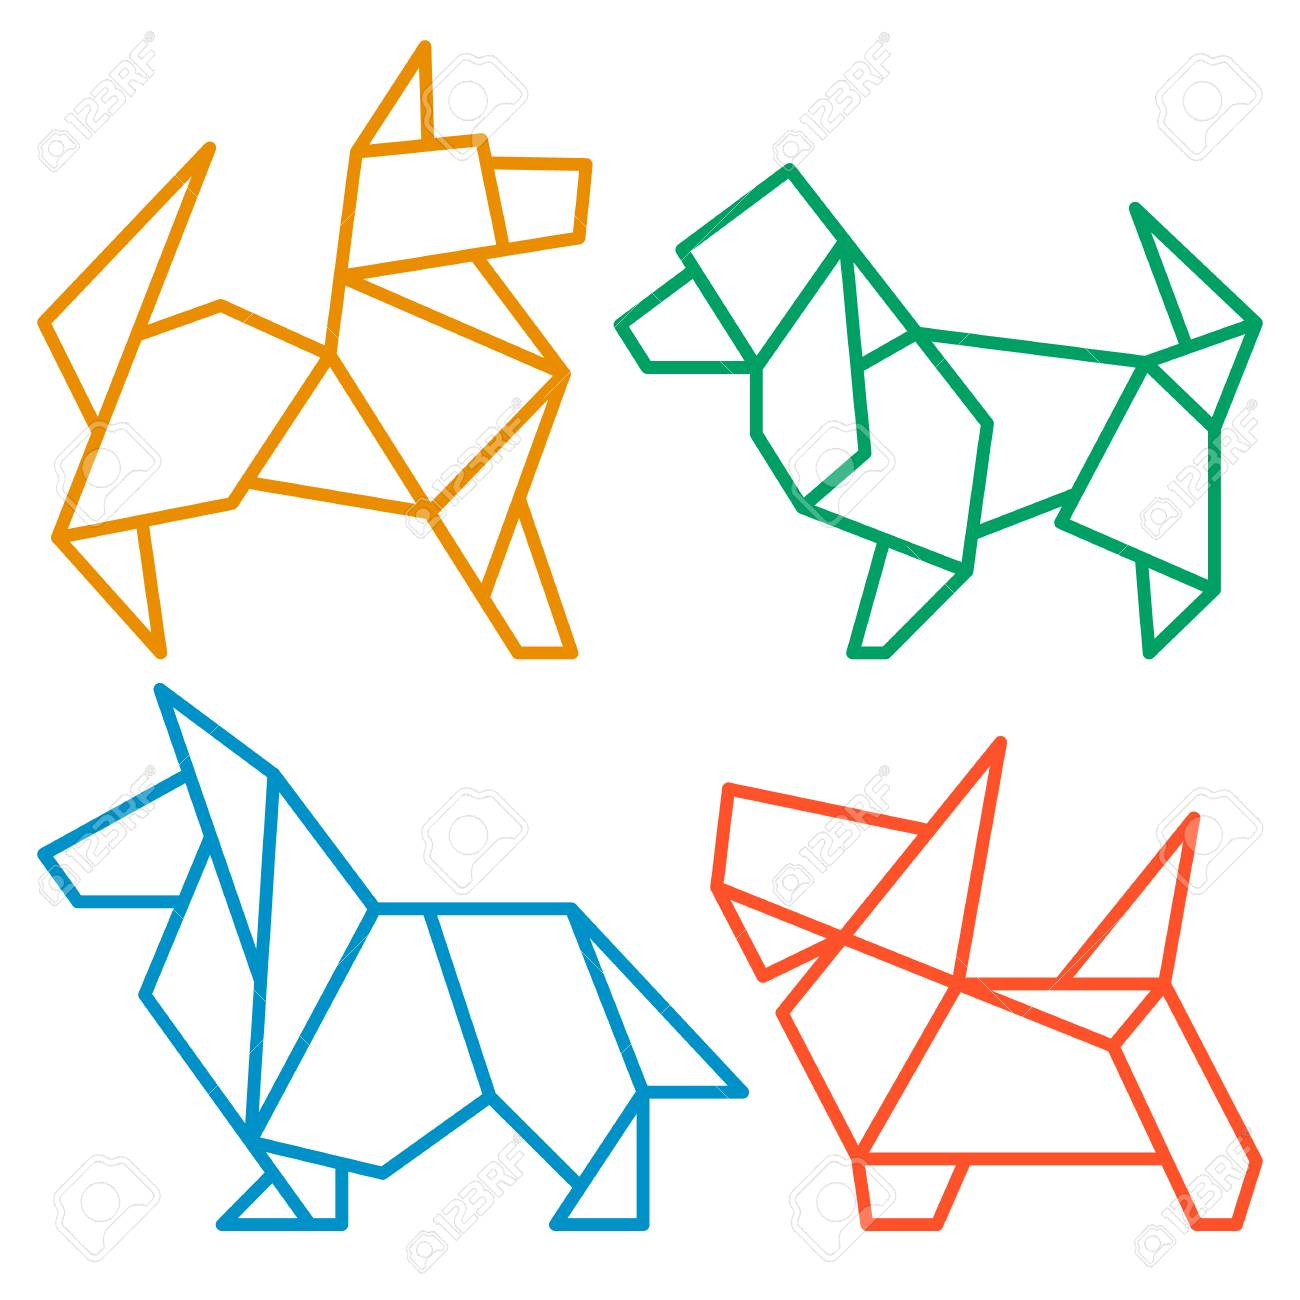 Chinese New Year Symbol Vector Origami Dogs Icon Set Abstract Low Poly Pet Dog Breed Sign Silhouette Isolated On